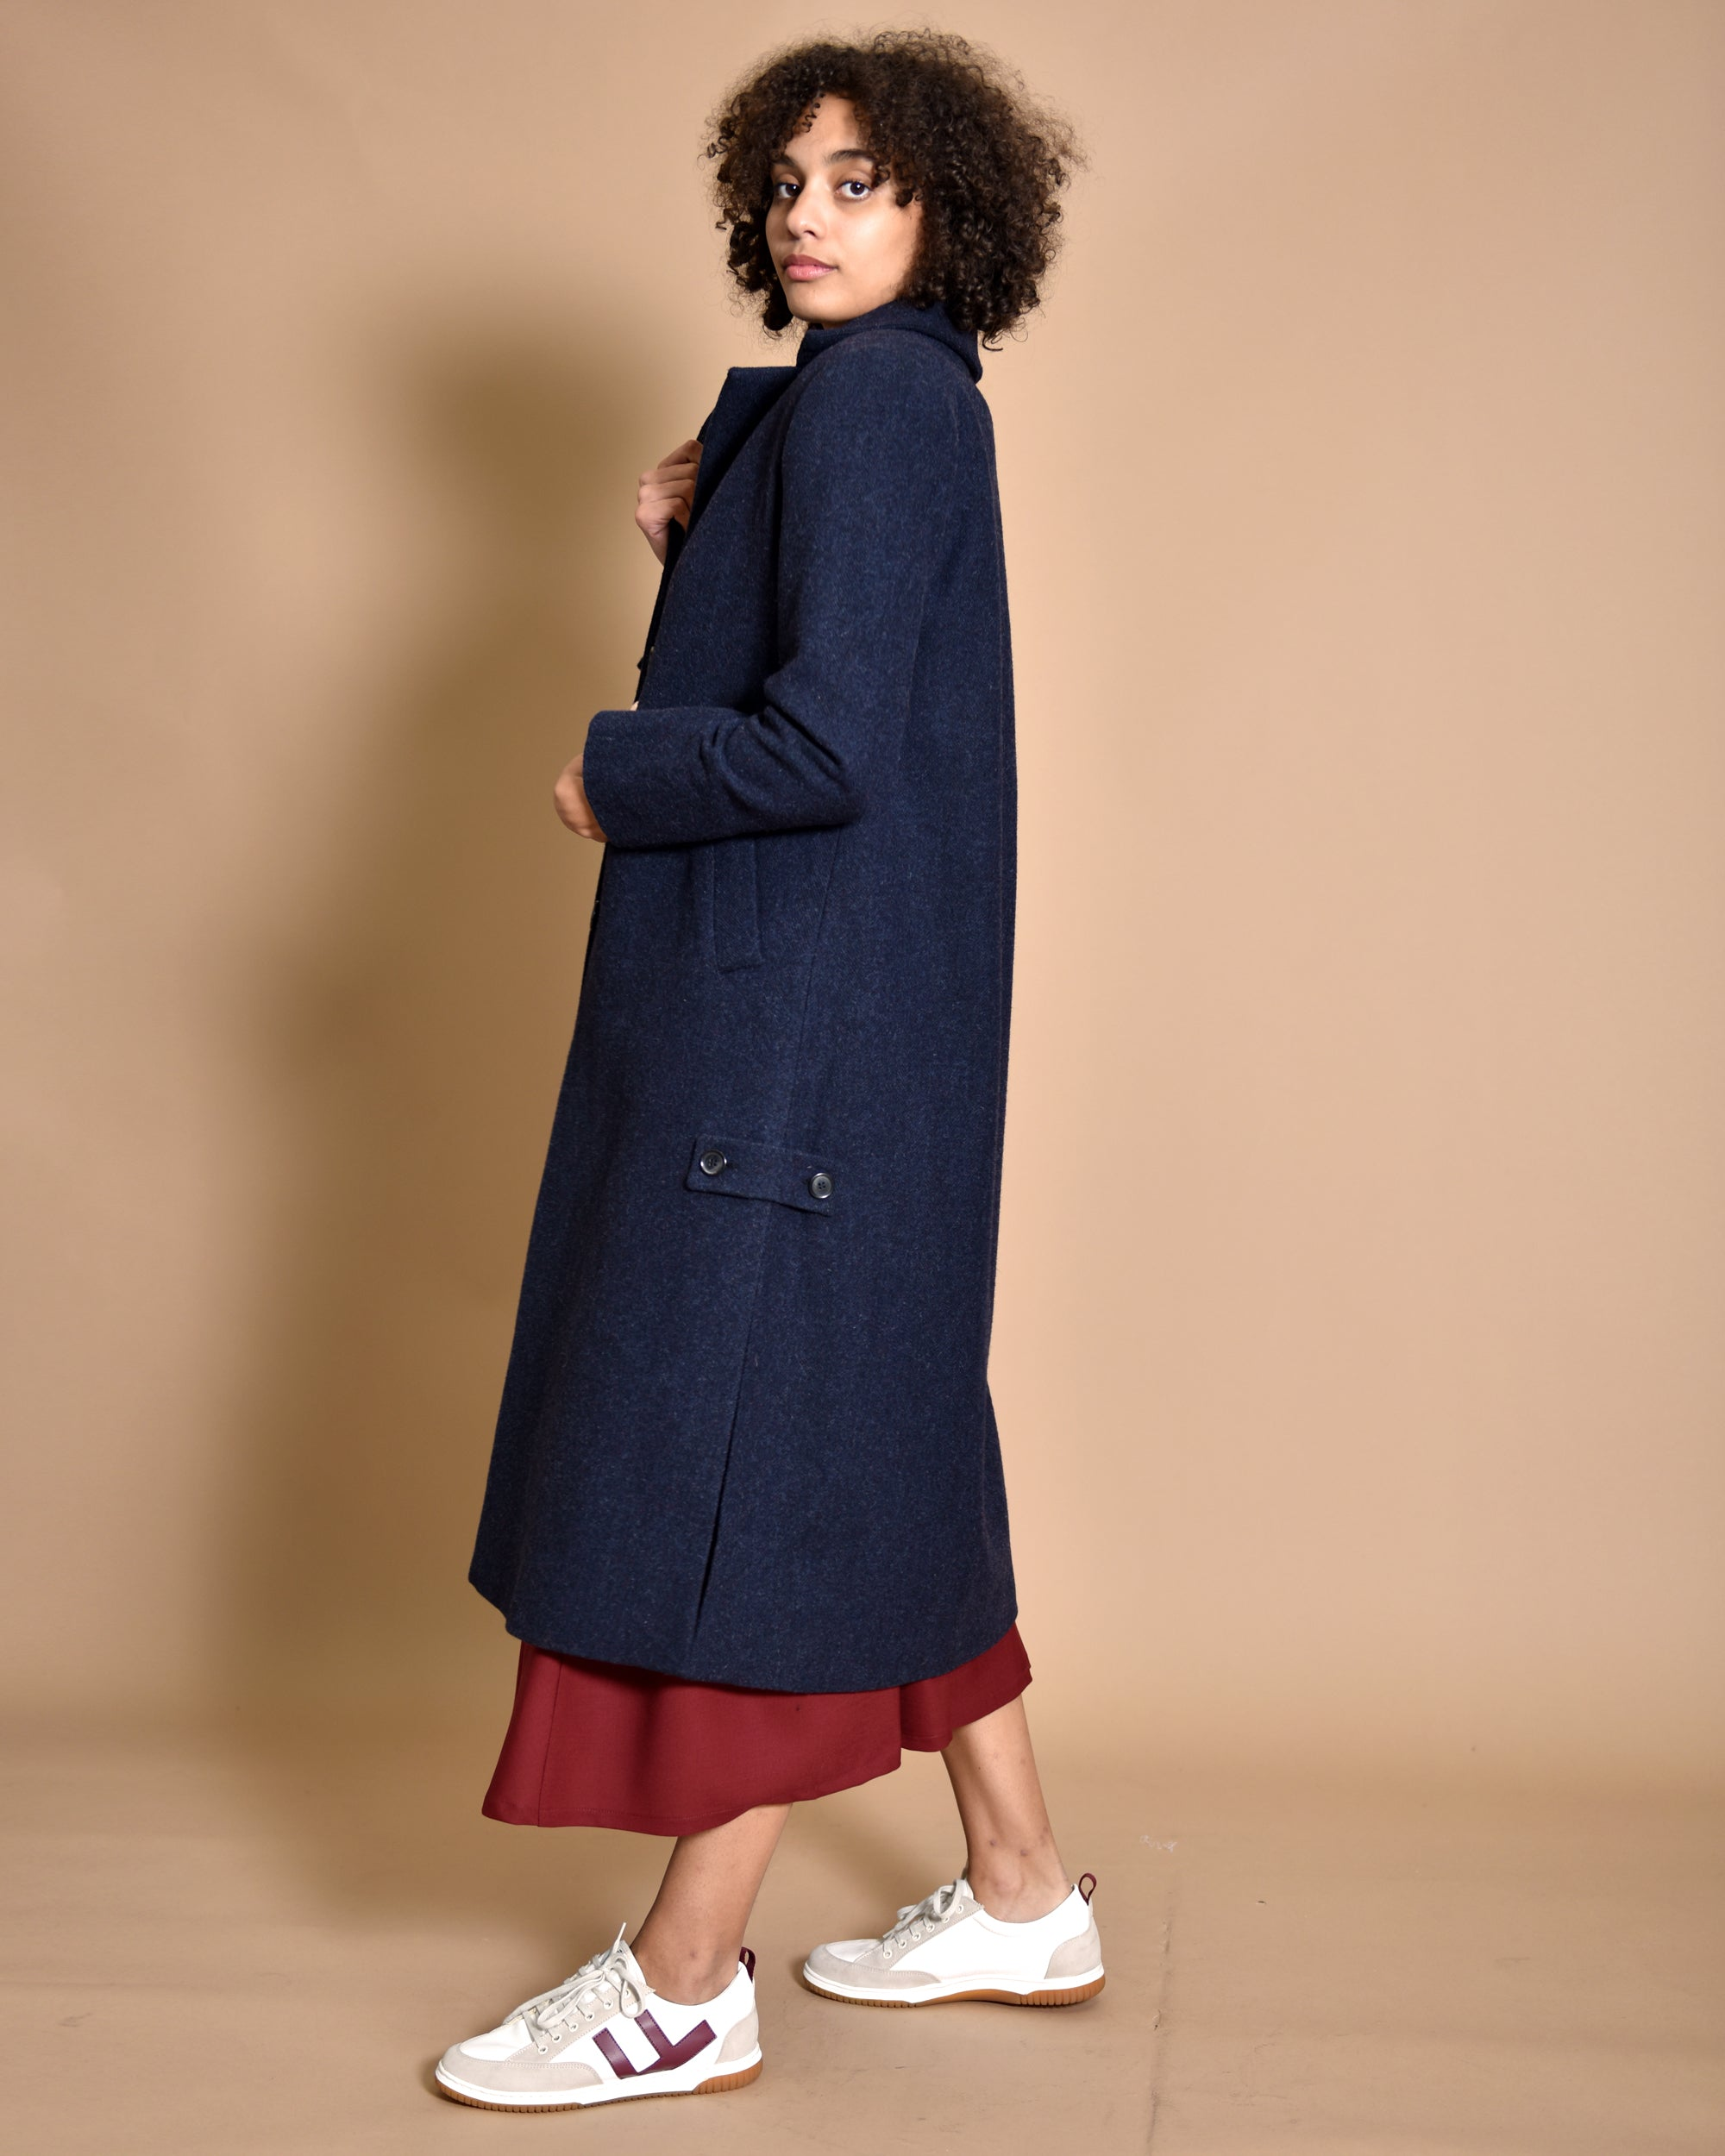 ATRIUM Tailored Wool Coat / Navy